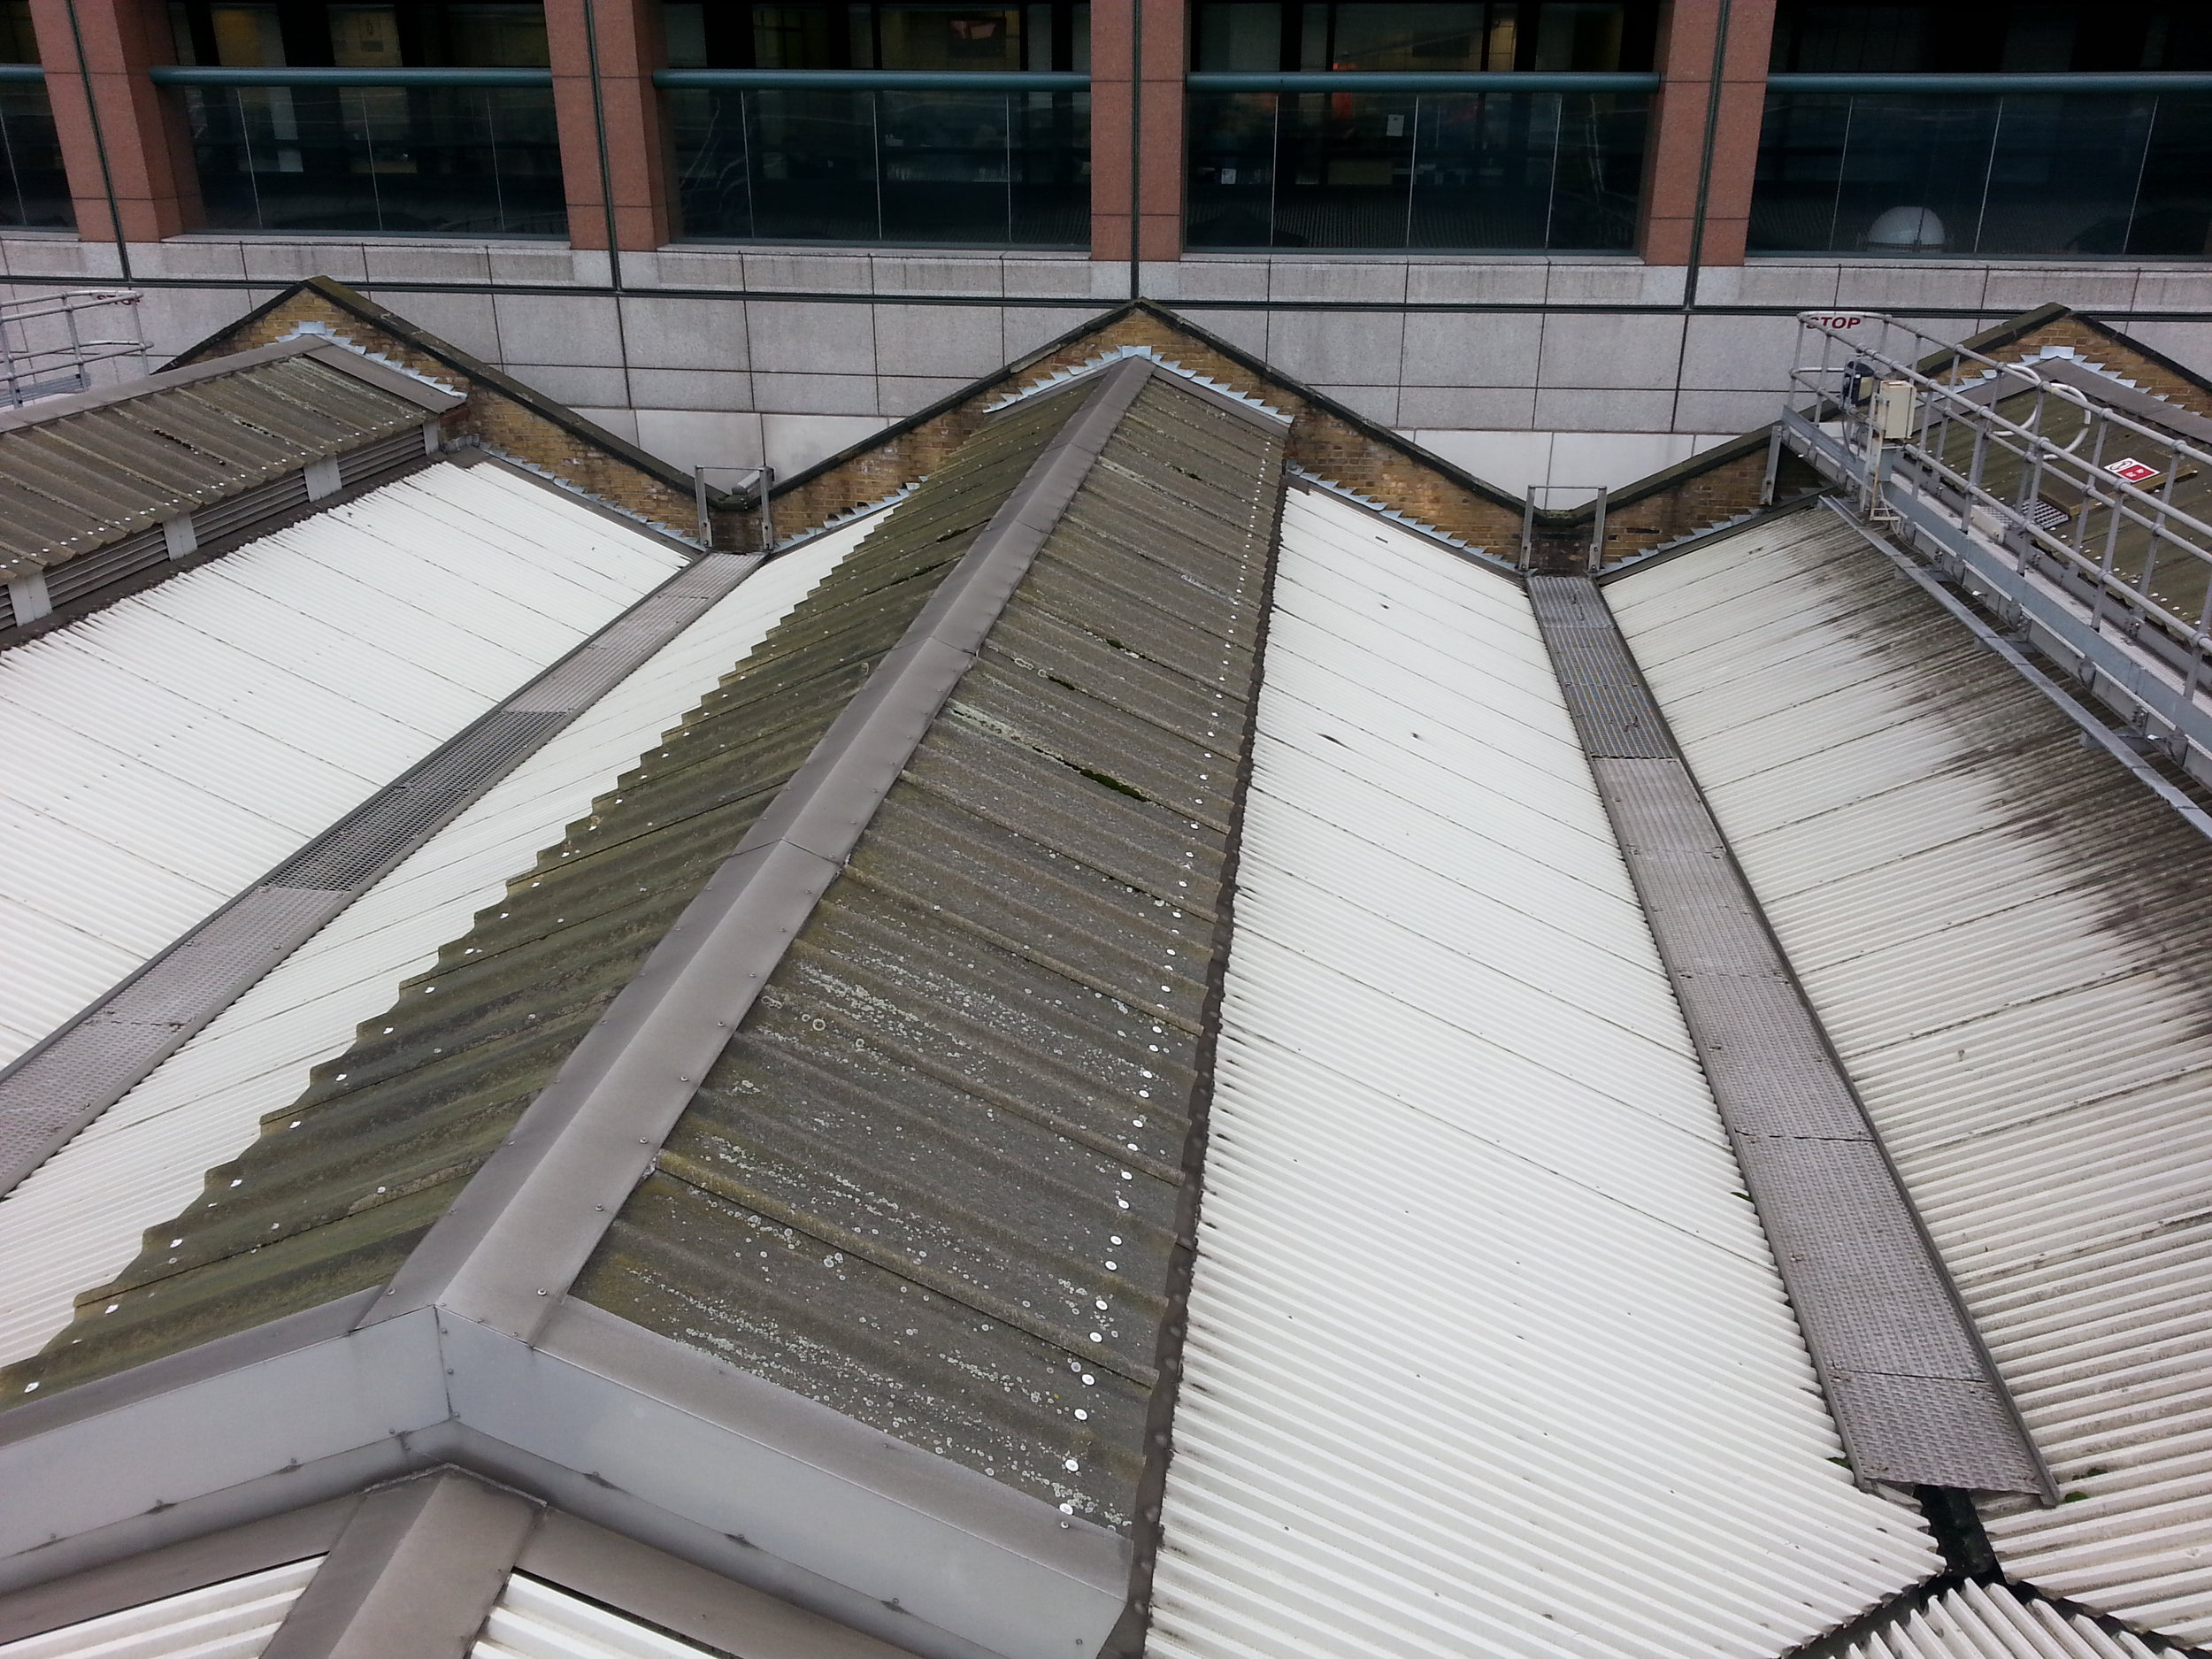 Liverpool Street Station - Roof Survey 138.jpg